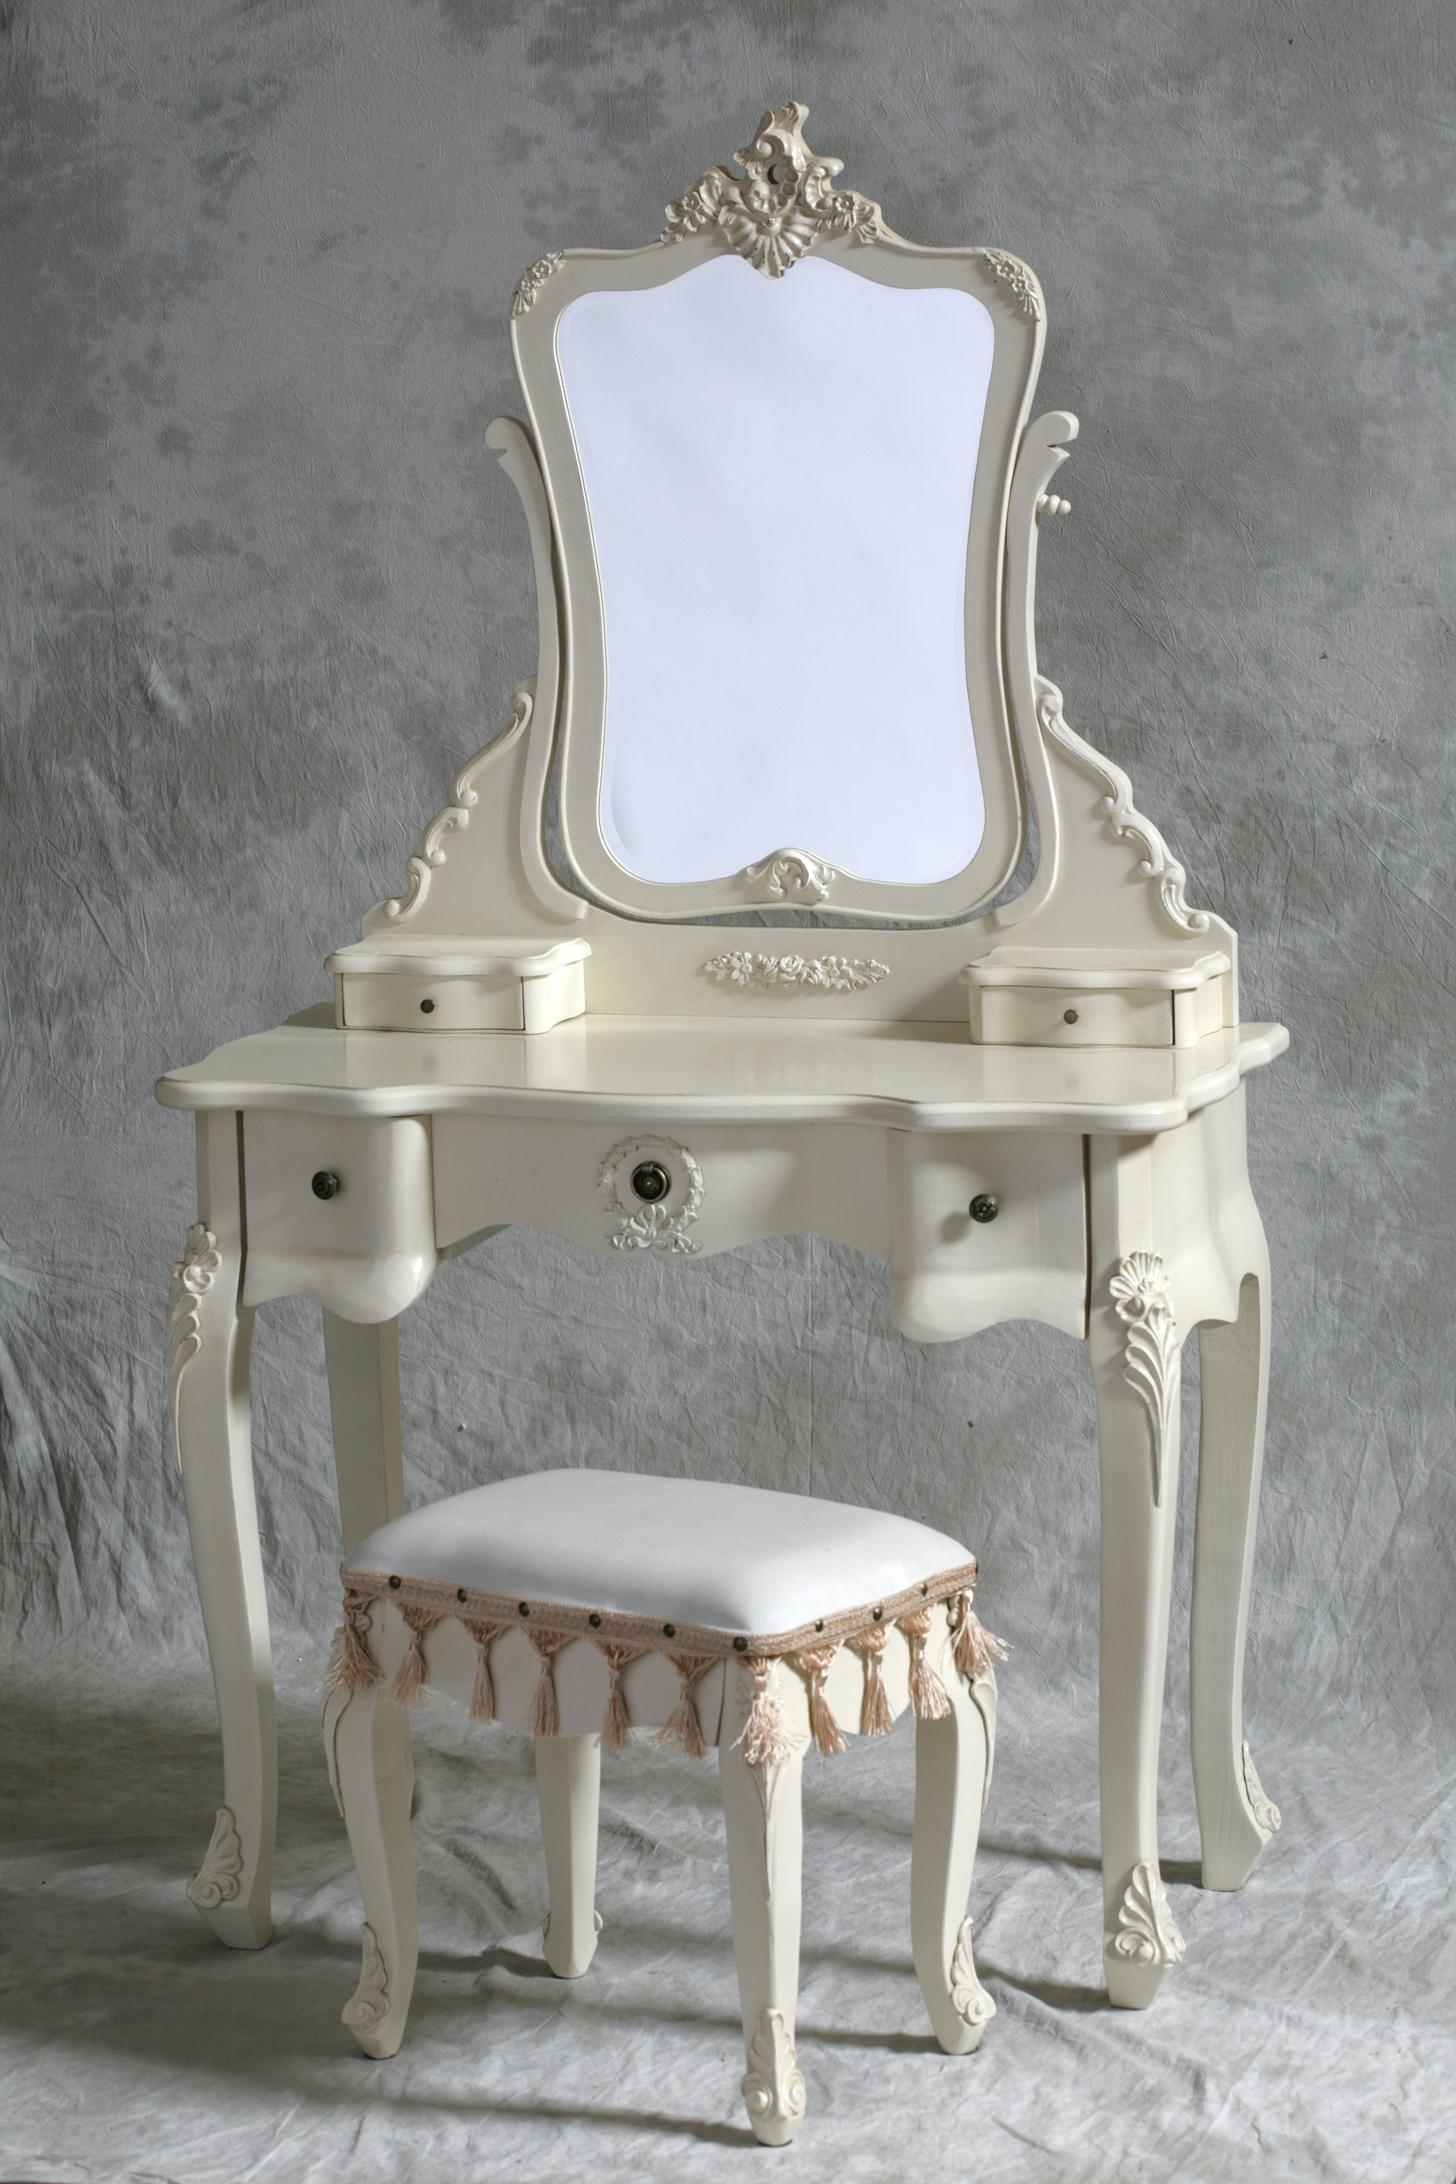 Home Kandi Amelia Cream Large French Rococo Dressing Table Intended For French Style Dressing Table Mirror (Image 10 of 15)